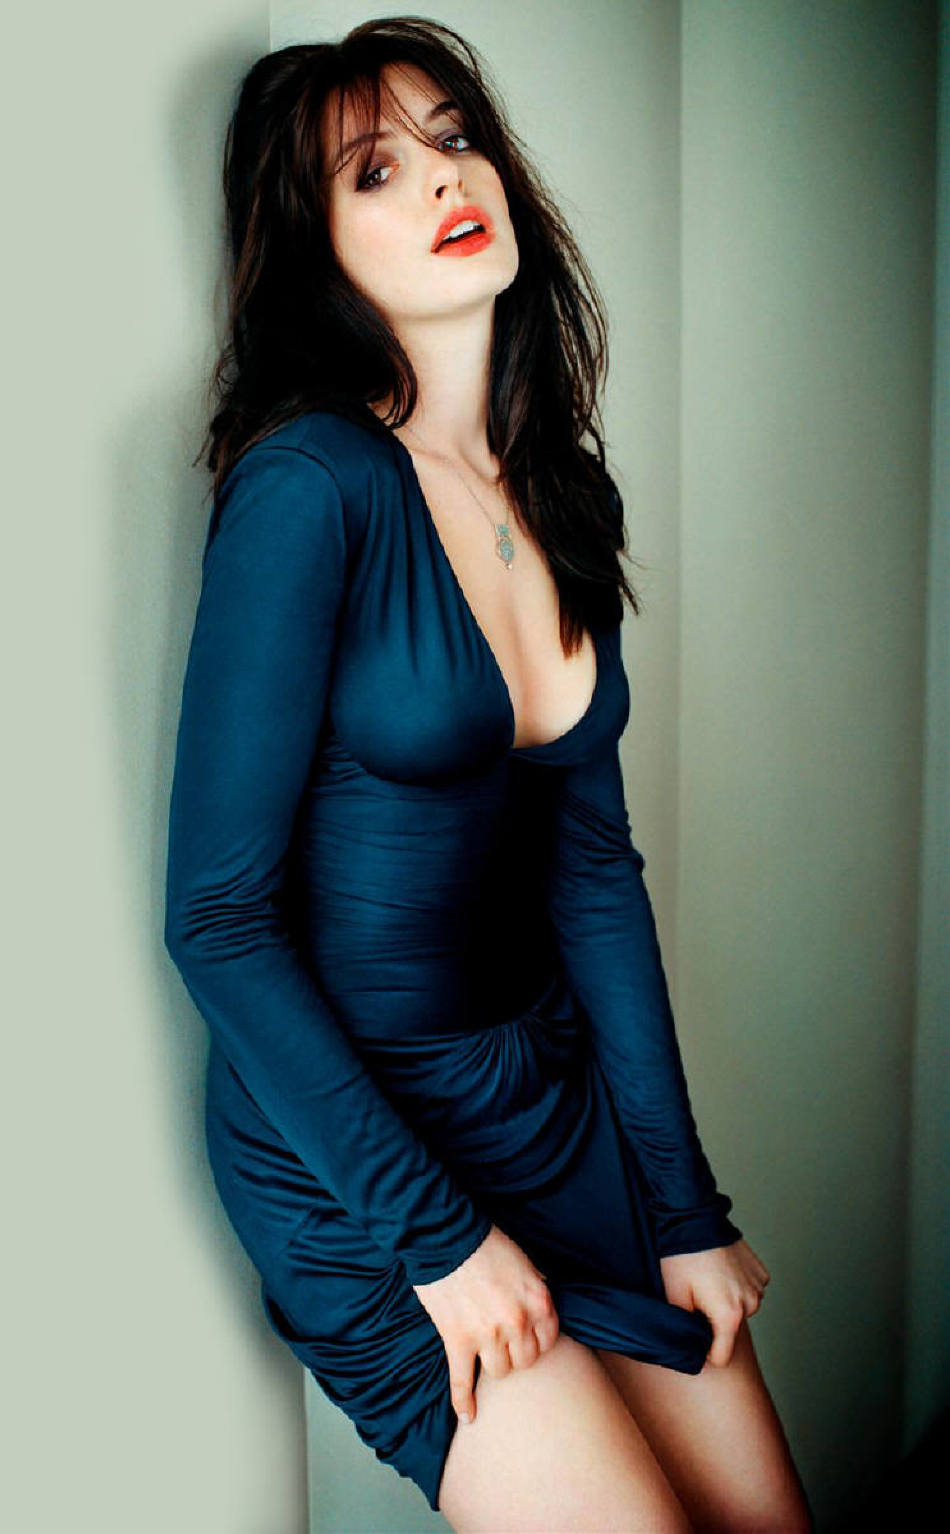 37 Hot Pictures Of Anne Hathaway - Catwoman in The Dark